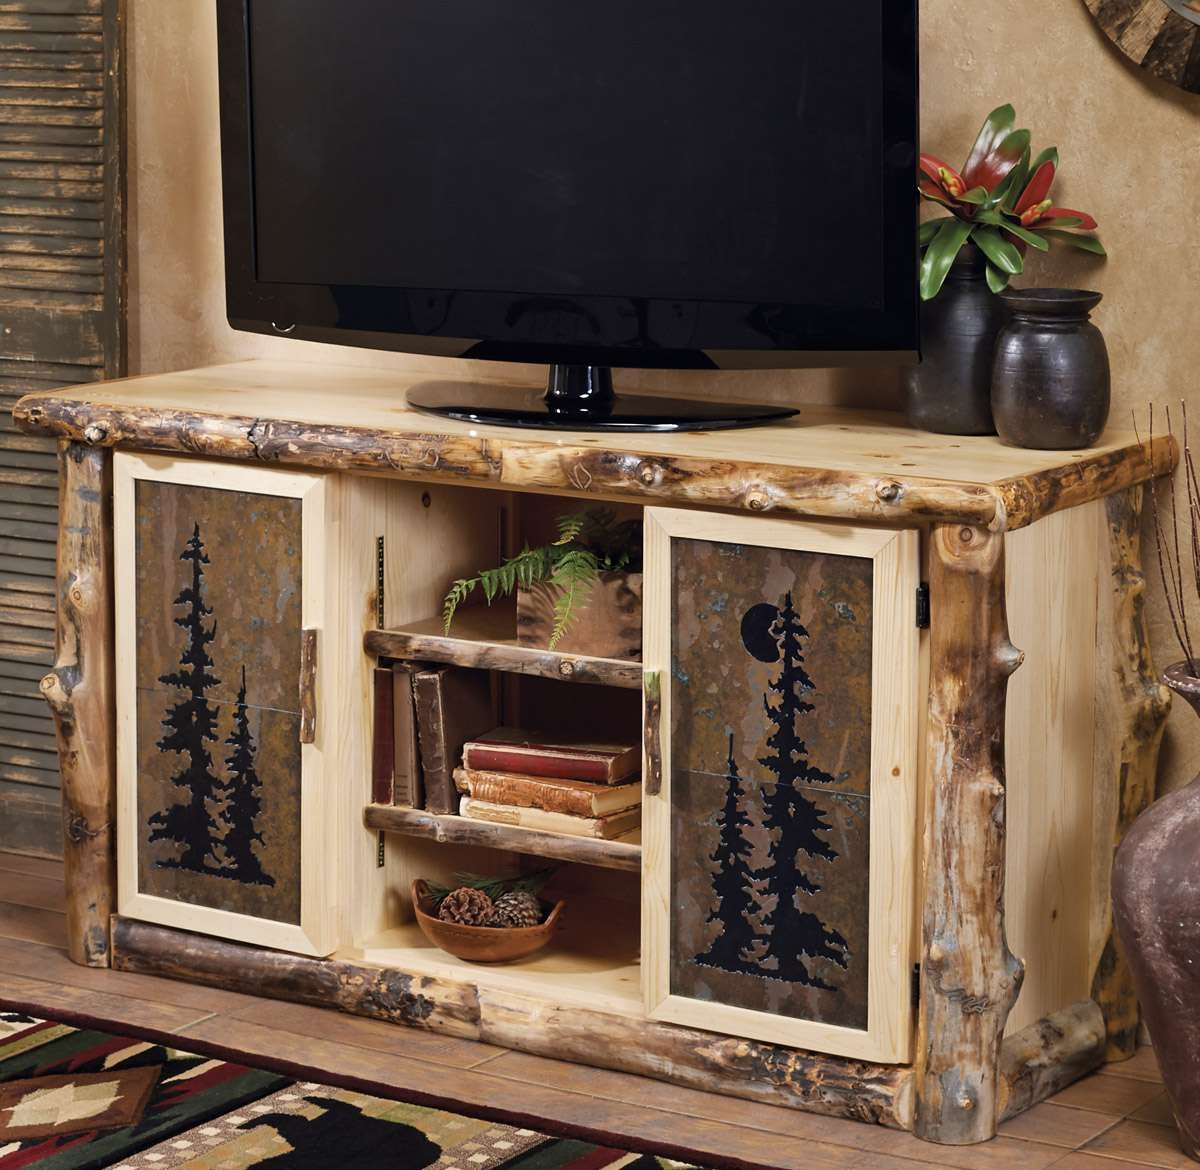 Inspirational Rustic Corner Tv Stand 44 About Remodel Small Home Regarding Rustic Corner Tv Stands (Gallery 7 of 15)